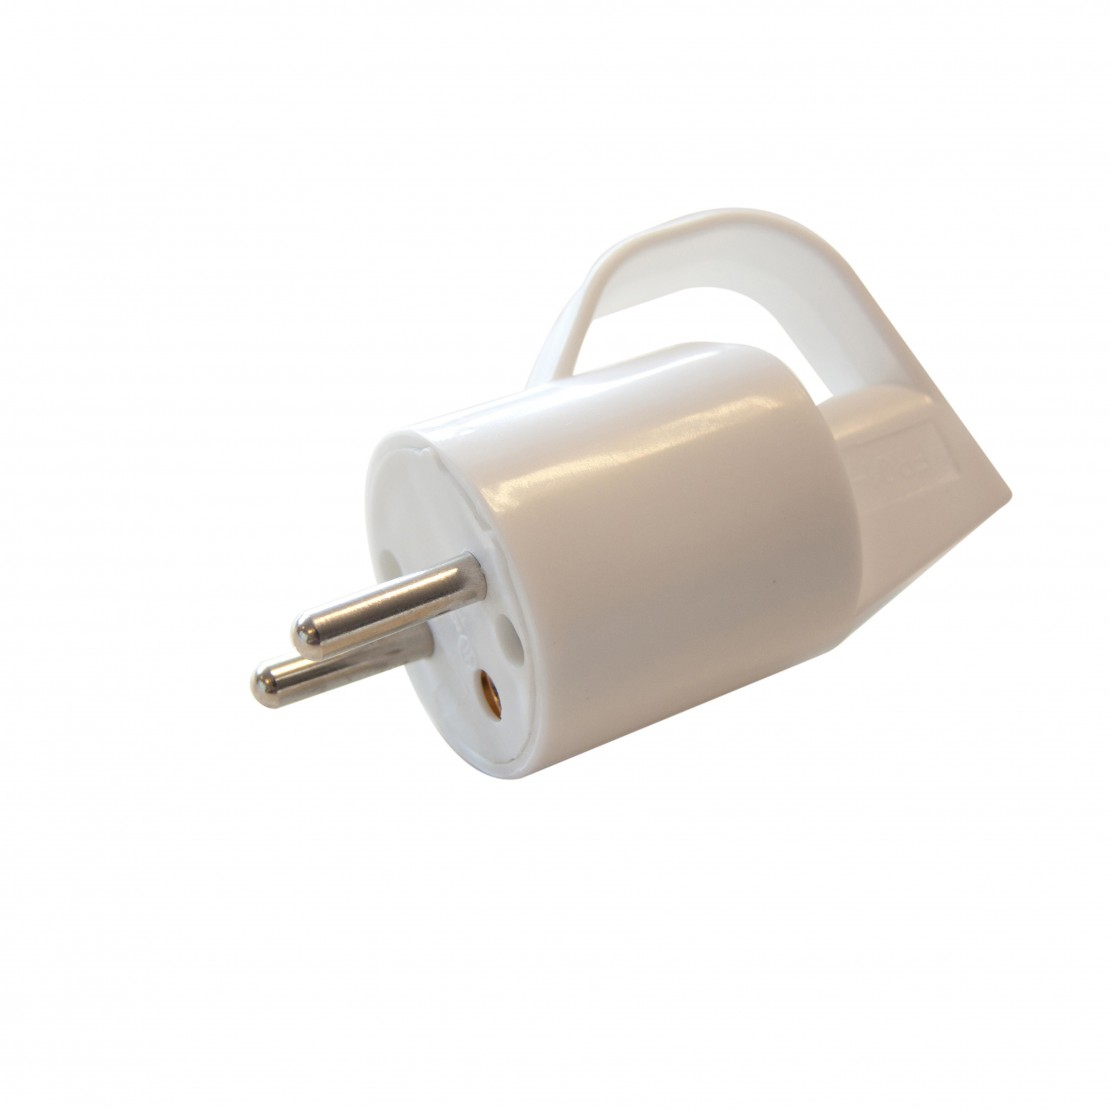 Pull-out movable plug - 16 A white